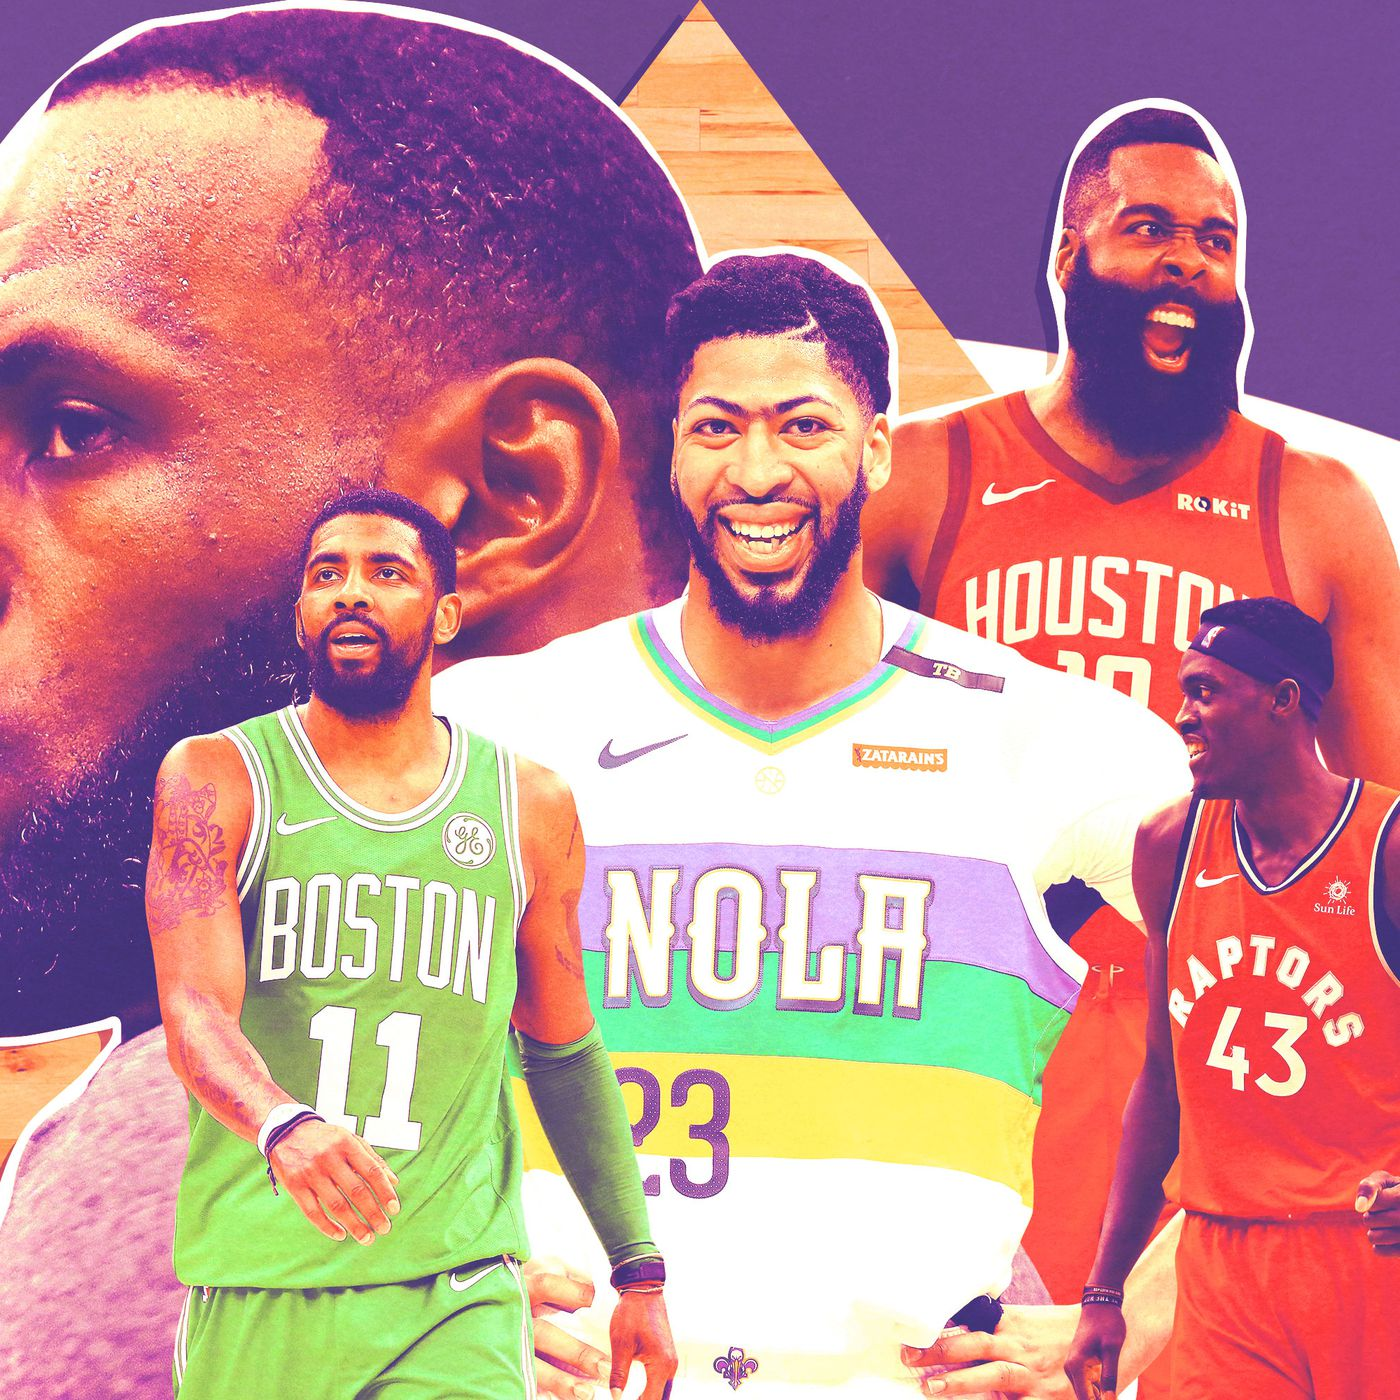 995308149a4d The Five Most Interesting Players of the 2018-19 NBA Season - The Ringer